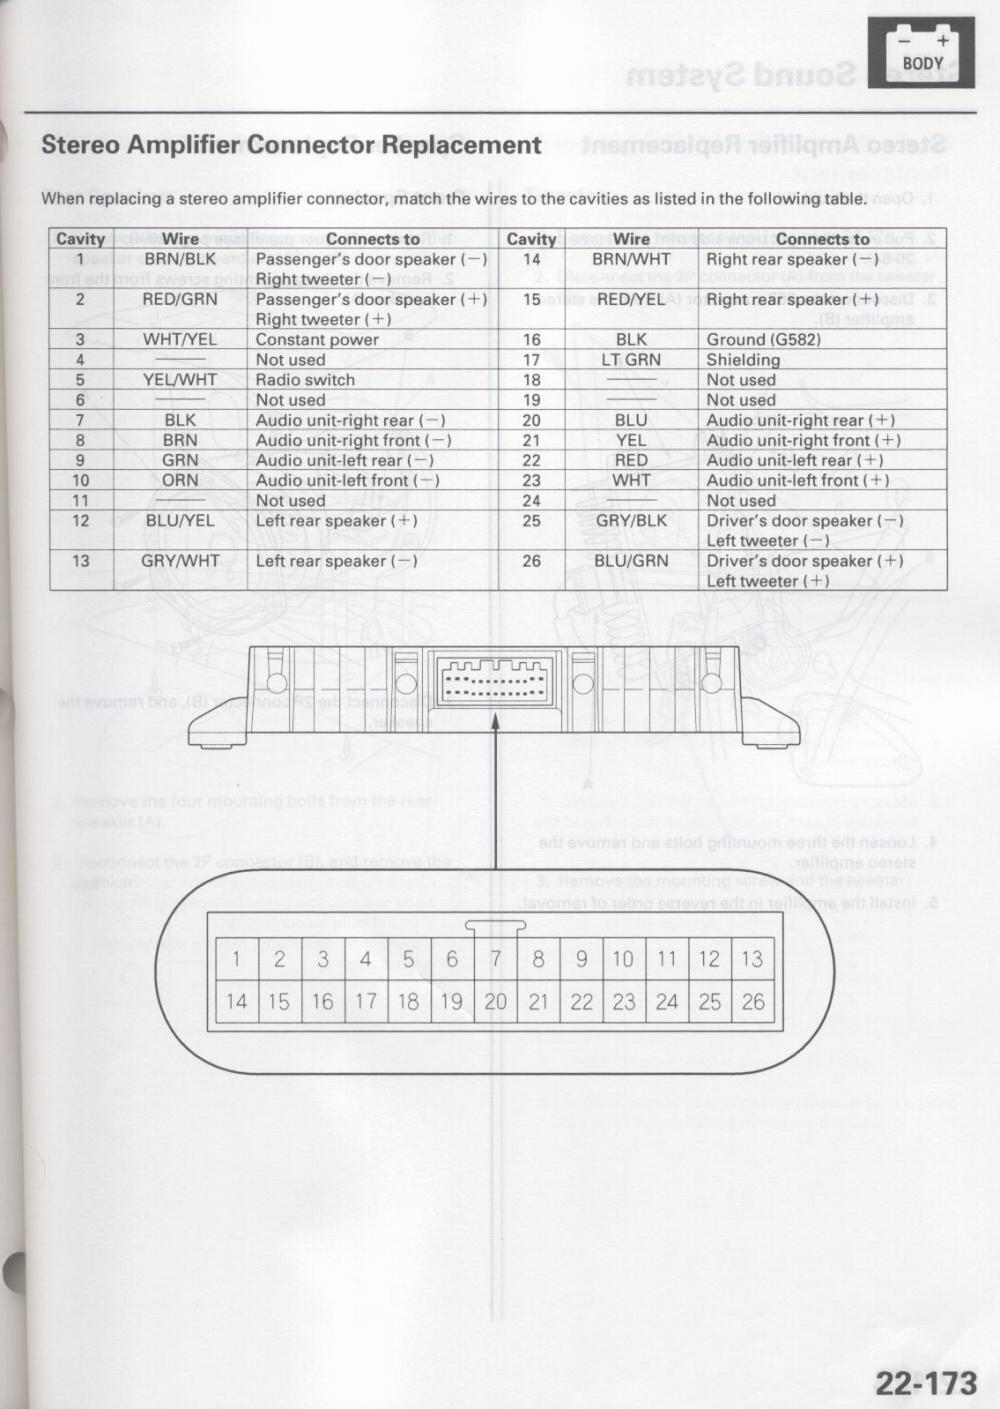 Car Radio Stereo Audio Wiring Diagram Autoradio Connector Wire 2005 Acura Tl Diagrams Installation Schematic Schema Esquema De Conexiones Anschlusskammern Konektor